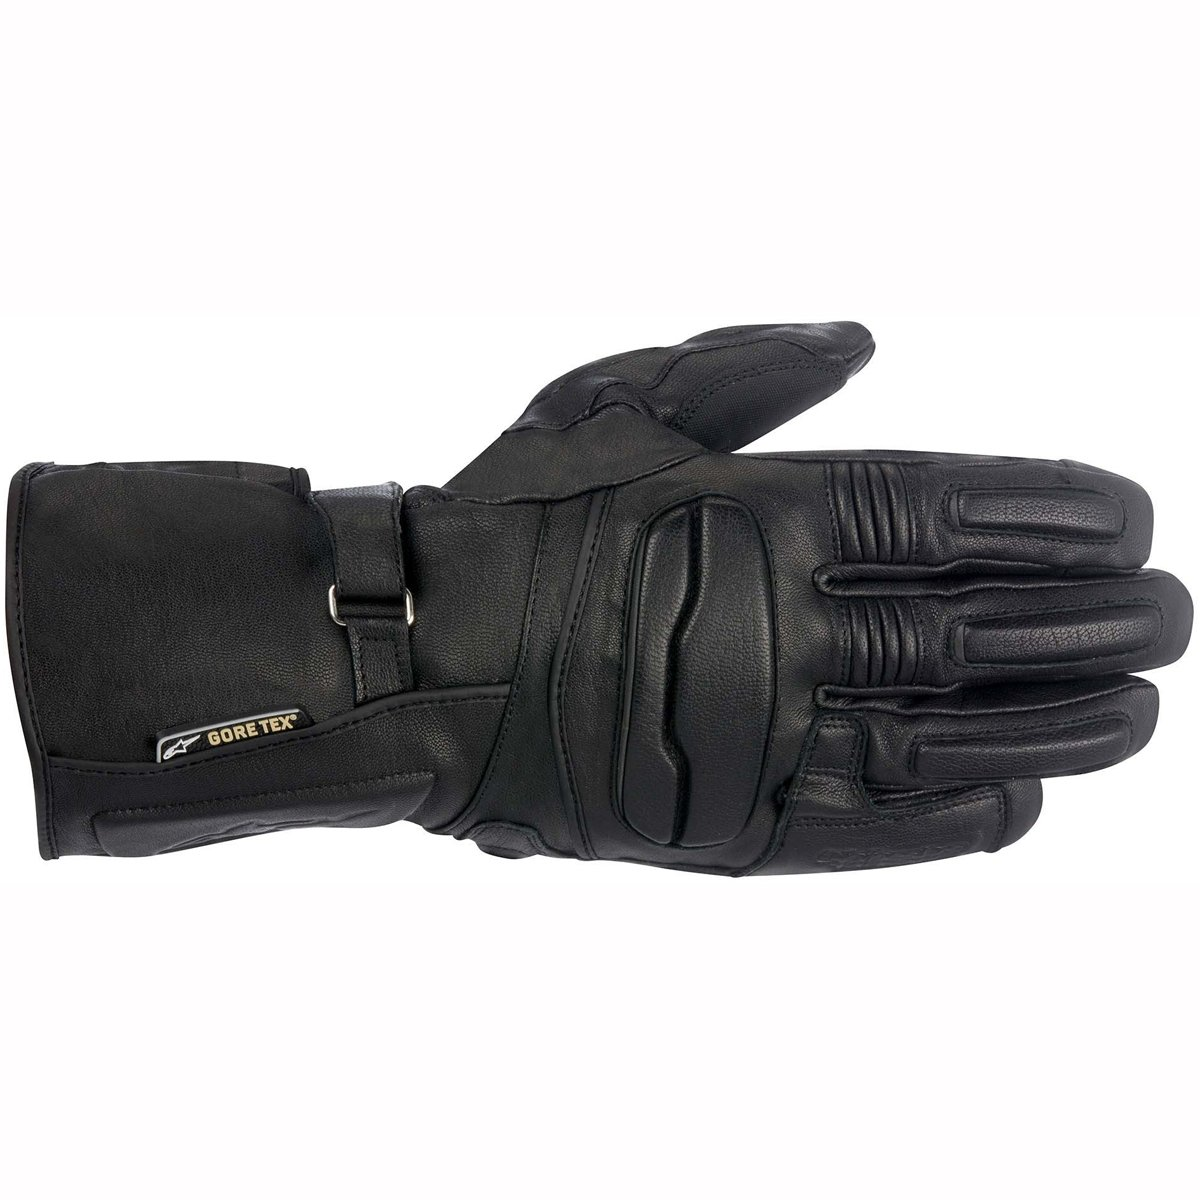 The Alpinestars WR-1 Gloves